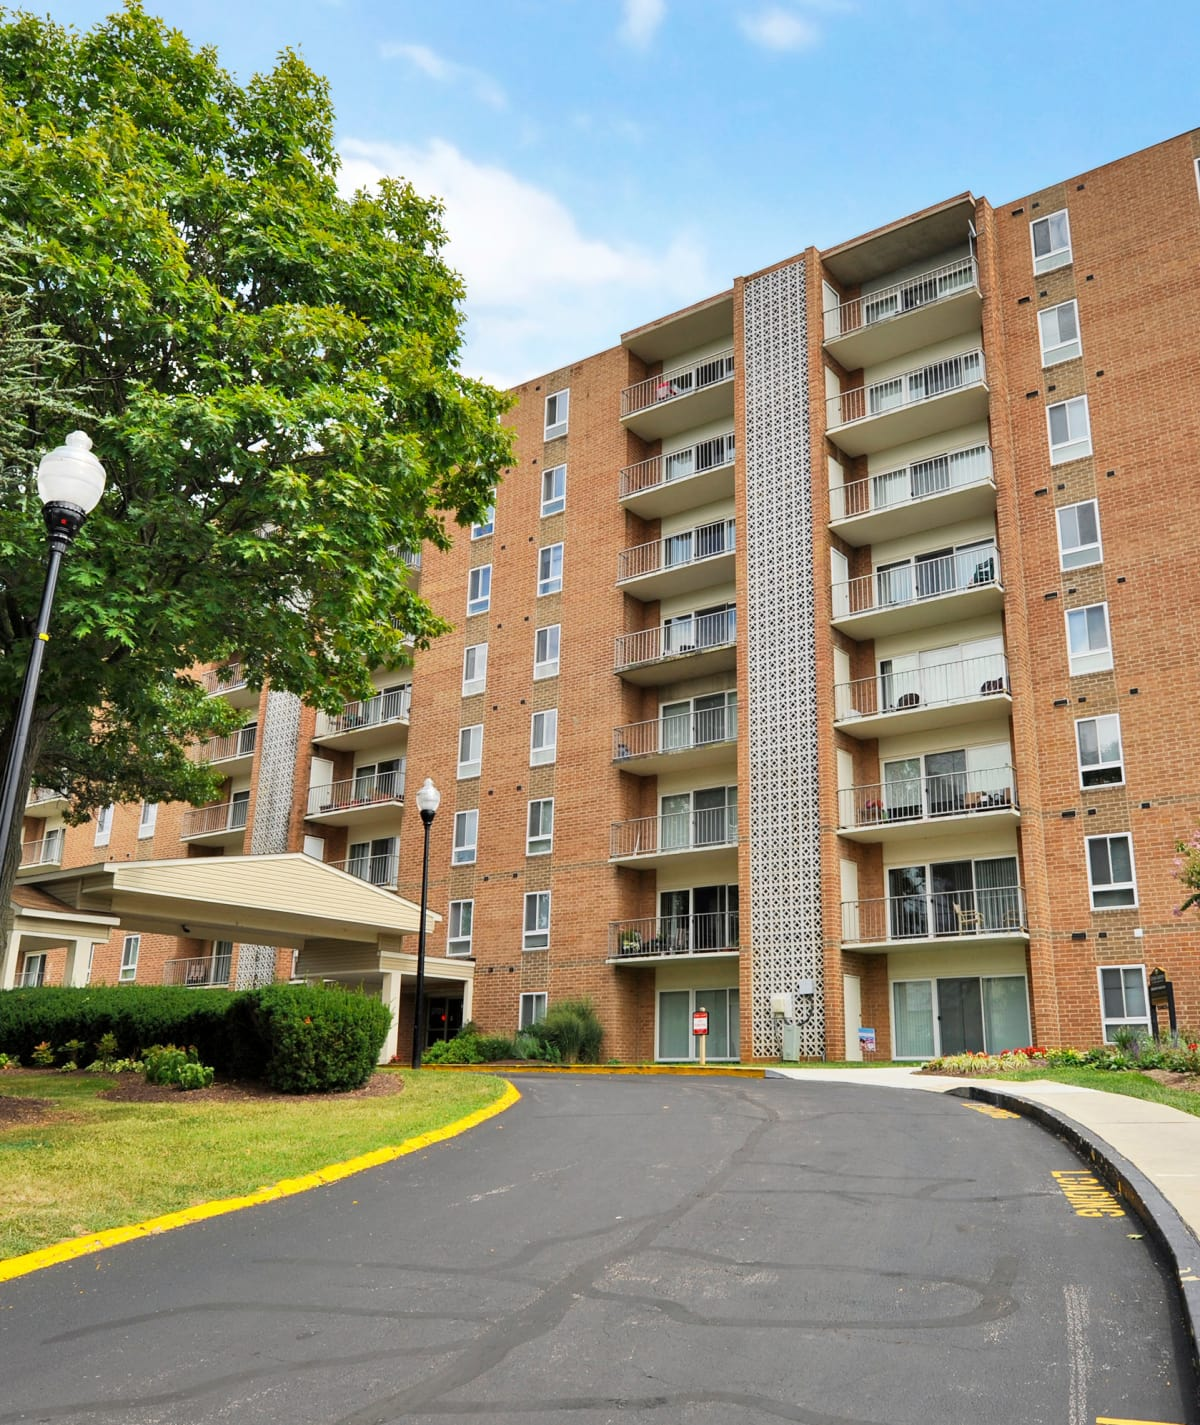 Apartments in Windsor Mill, MD